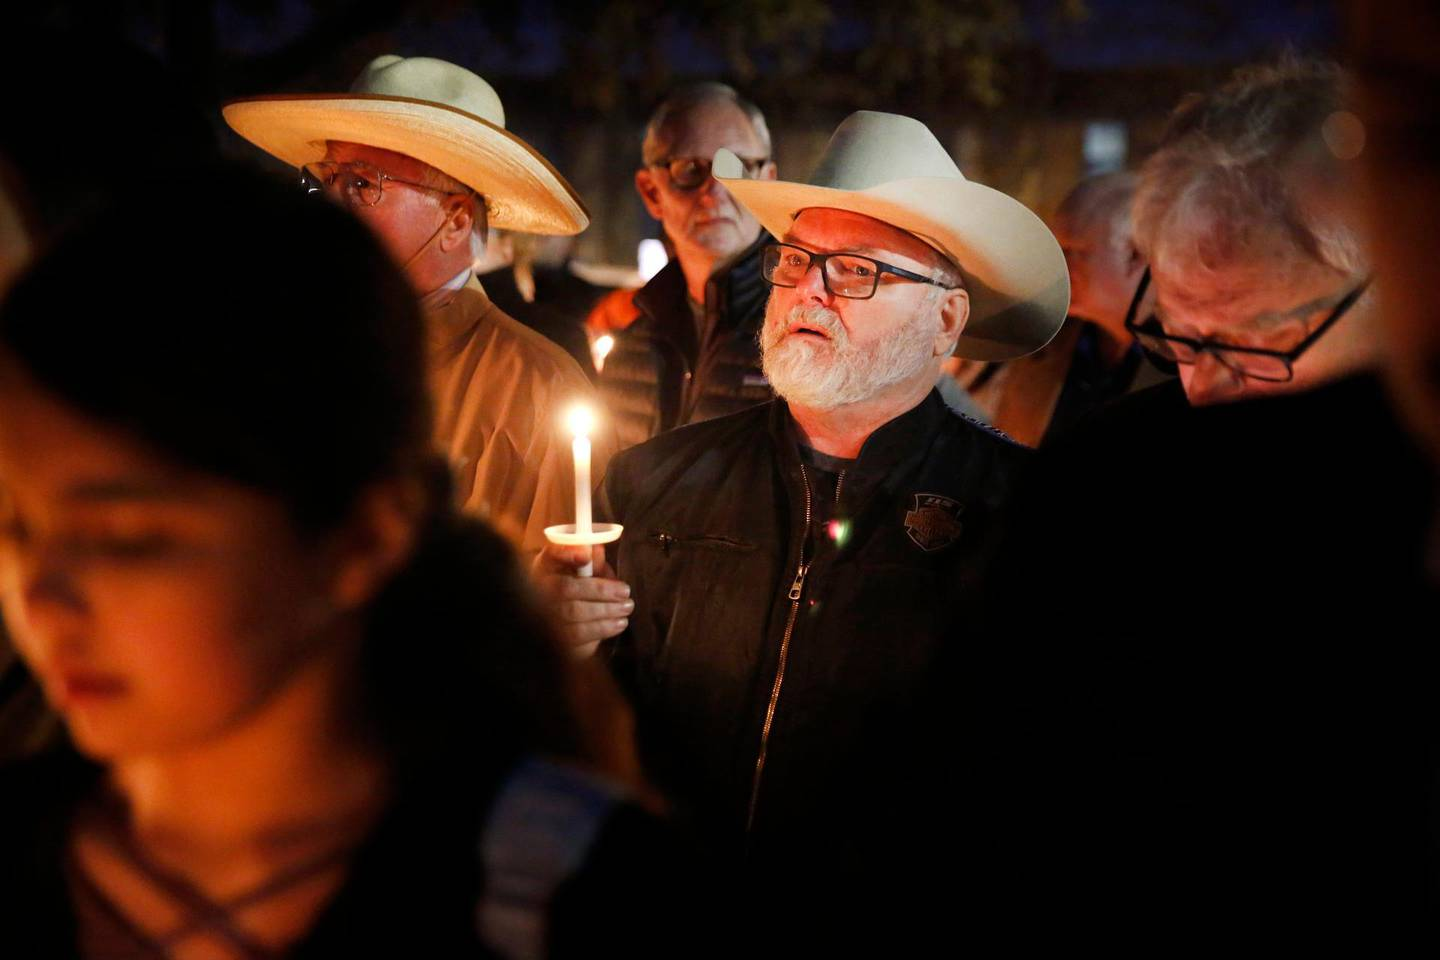 Stephen Willeford, center, who confronted and exchanged gunfire with the Sutherland Springs church shooter in 2017, joins church and community members gathered outside West Freeway Church of Christ for a candlelight vigil, Monday, Dec. 30, 2019, in White Settlement, Texas. A gunman shot and killed two people before an armed security officer returned fire, killing him during a service at the church on Sunday. (Tom Fox/The Dallas Morning News via AP)